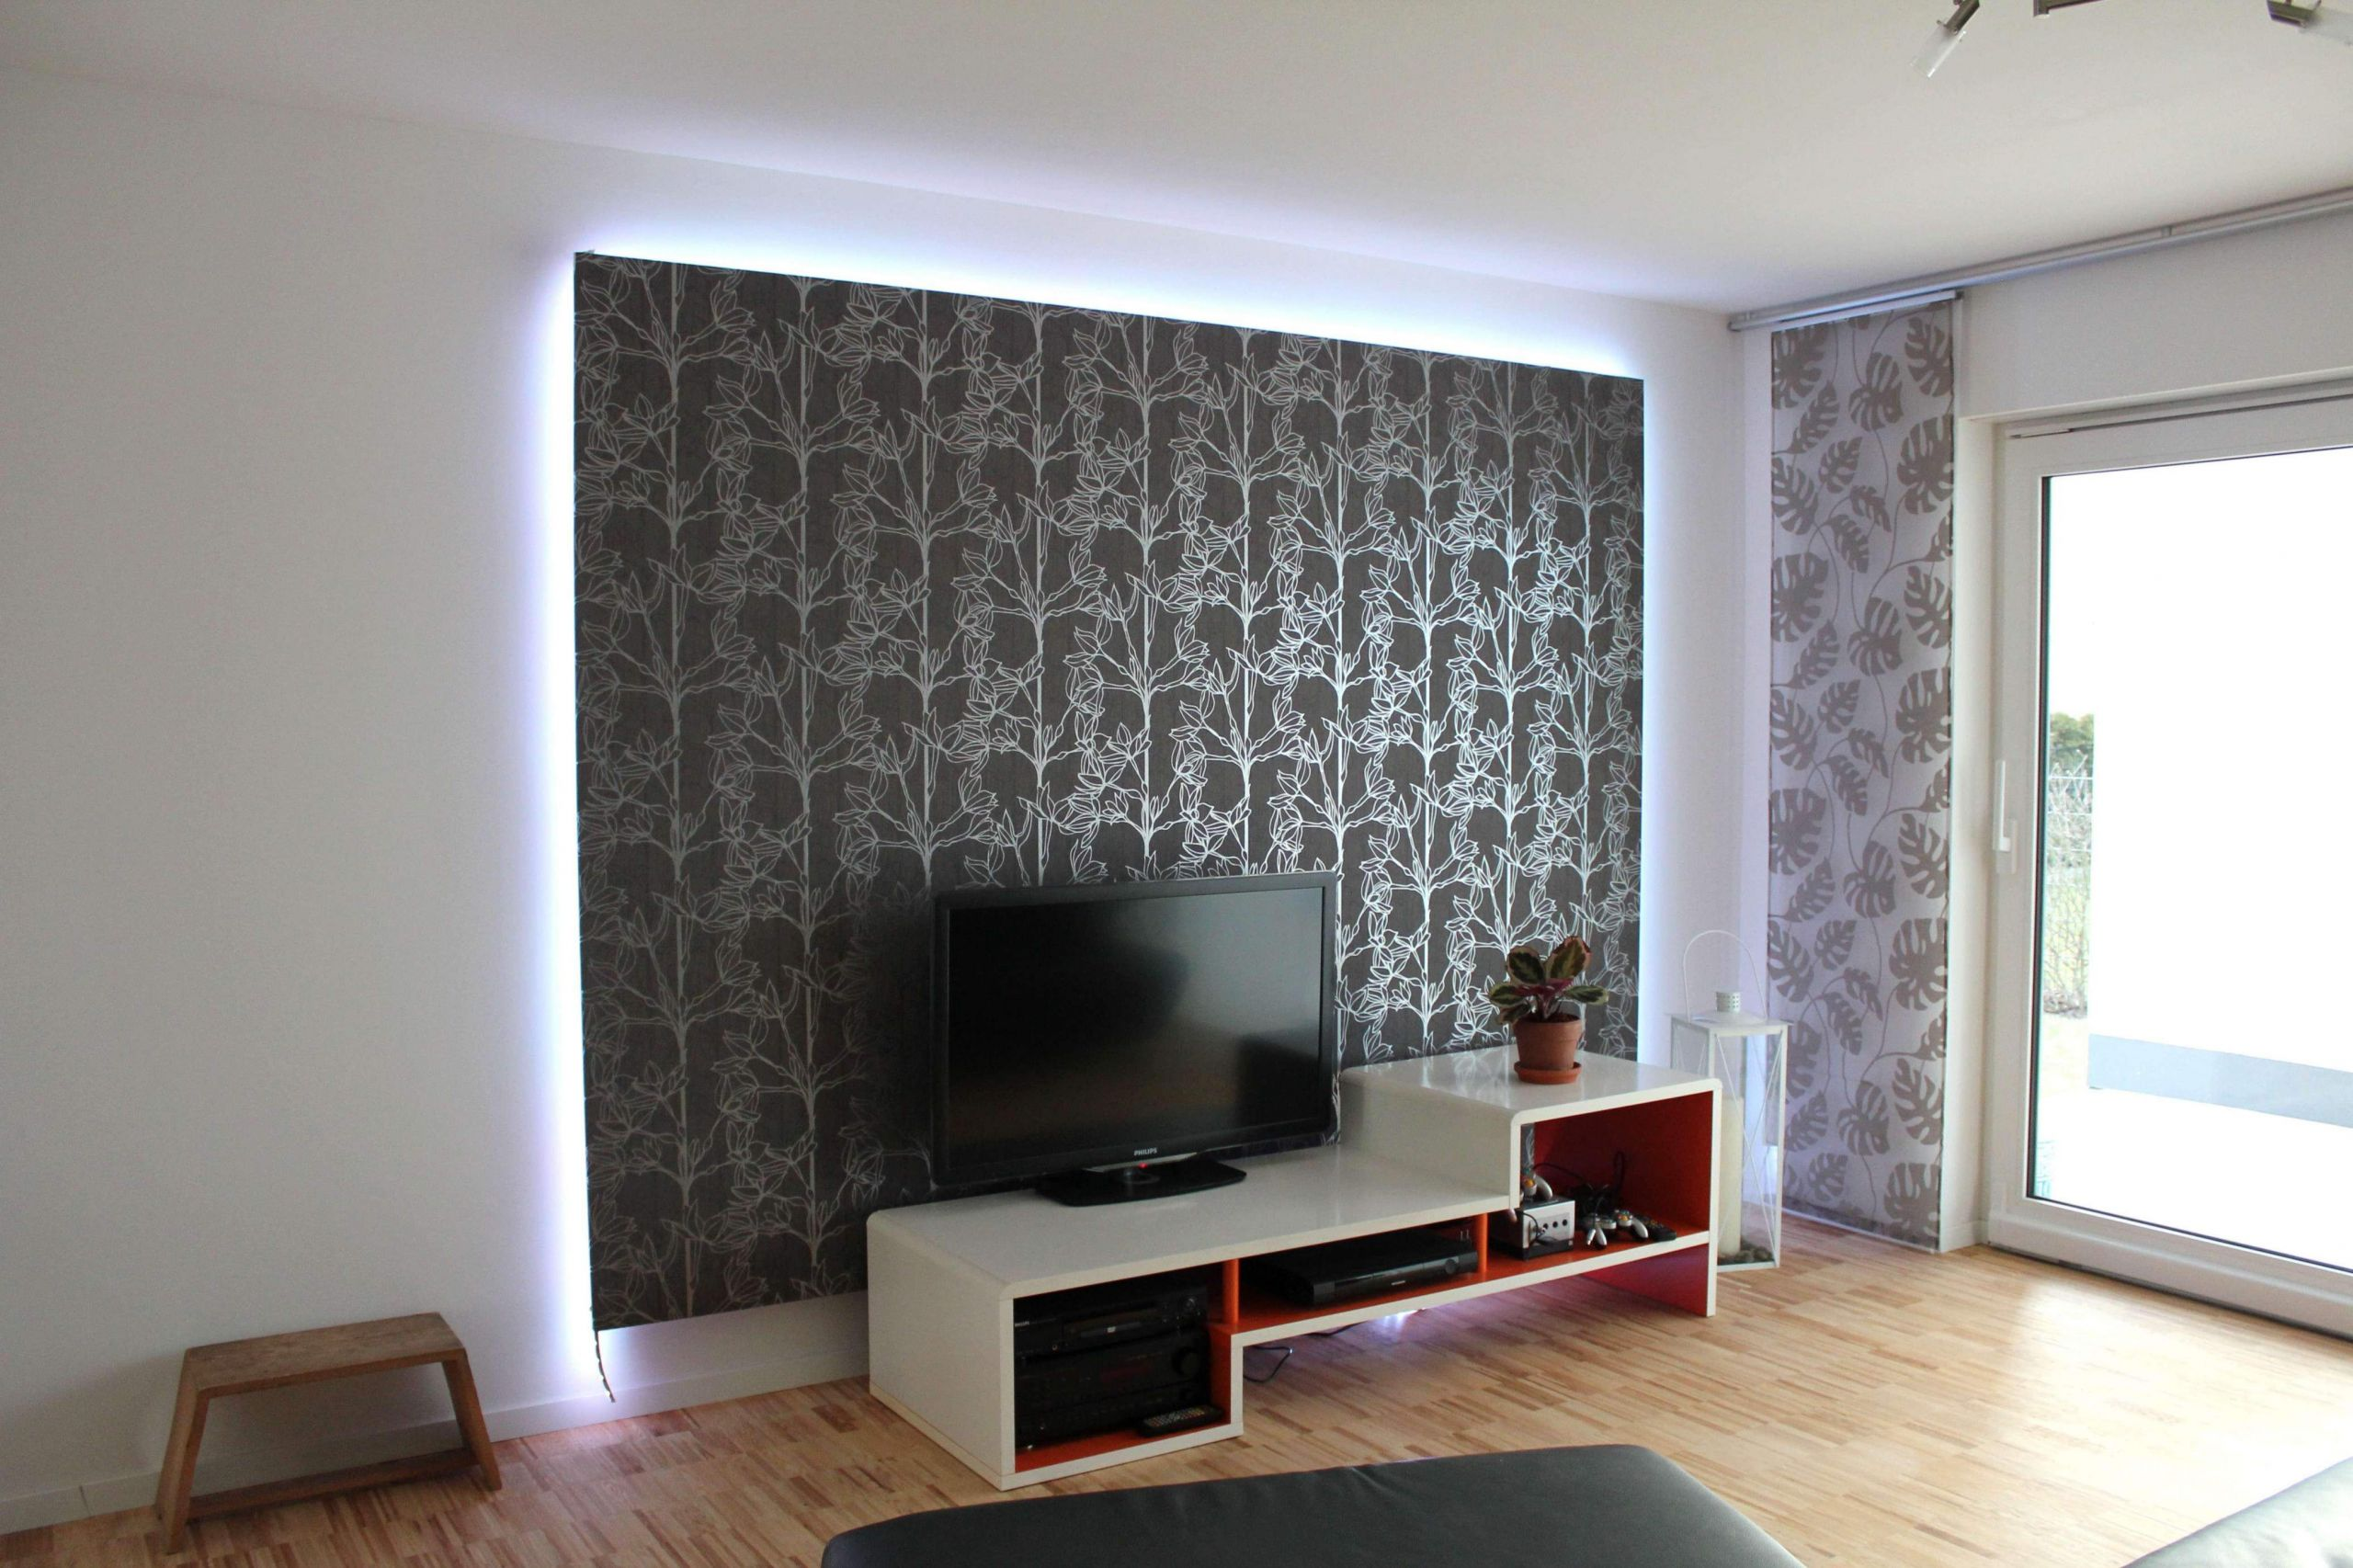 philips design line tv branche led beleuchtung fernseher huambodigital of philips design line tv